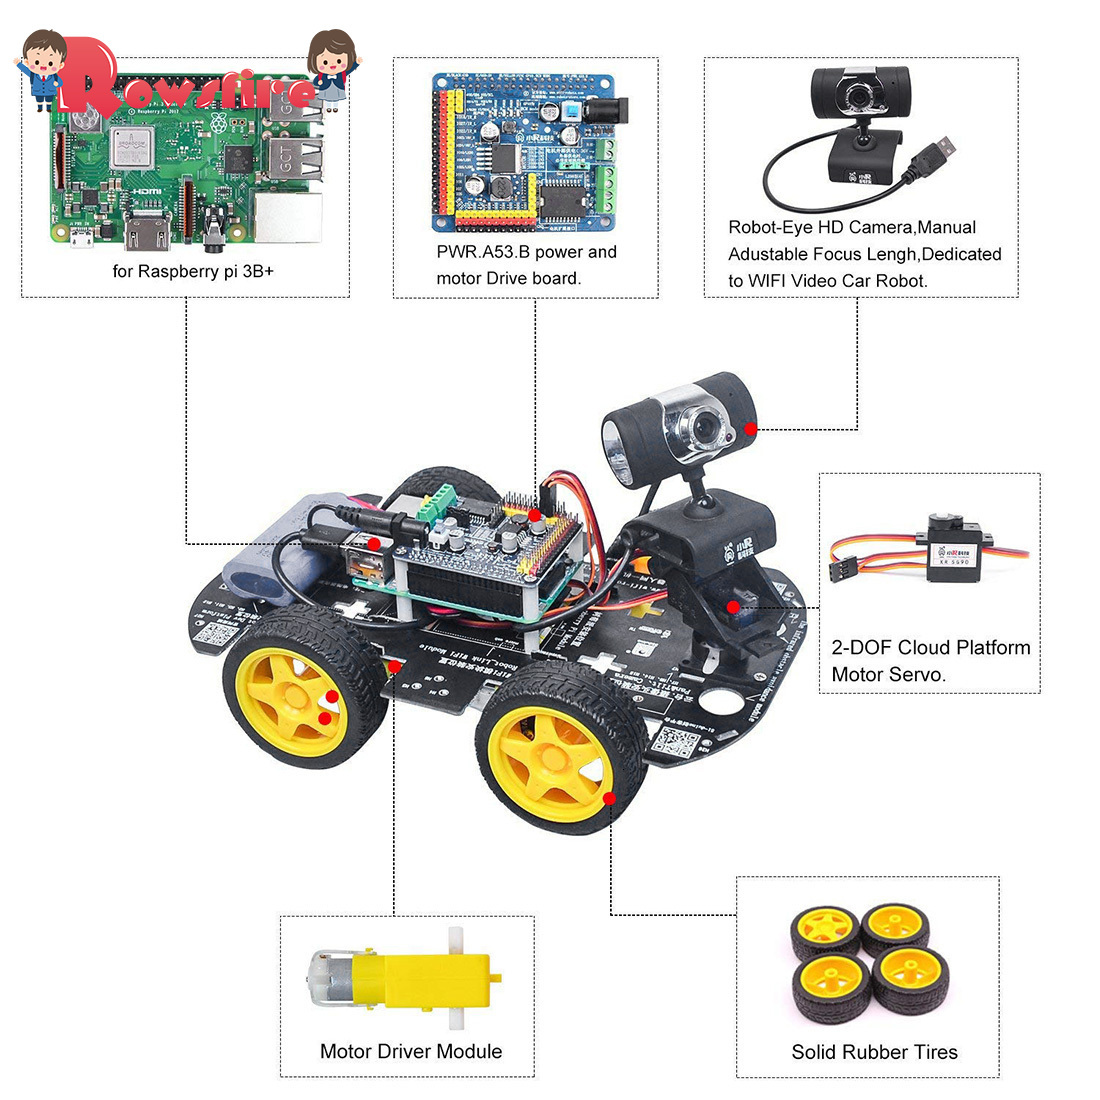 Programmable Robot DIY Wifi + Bluetooth Steam Educational Car With Graphic Programming XR BLOCK Linux Standard Version